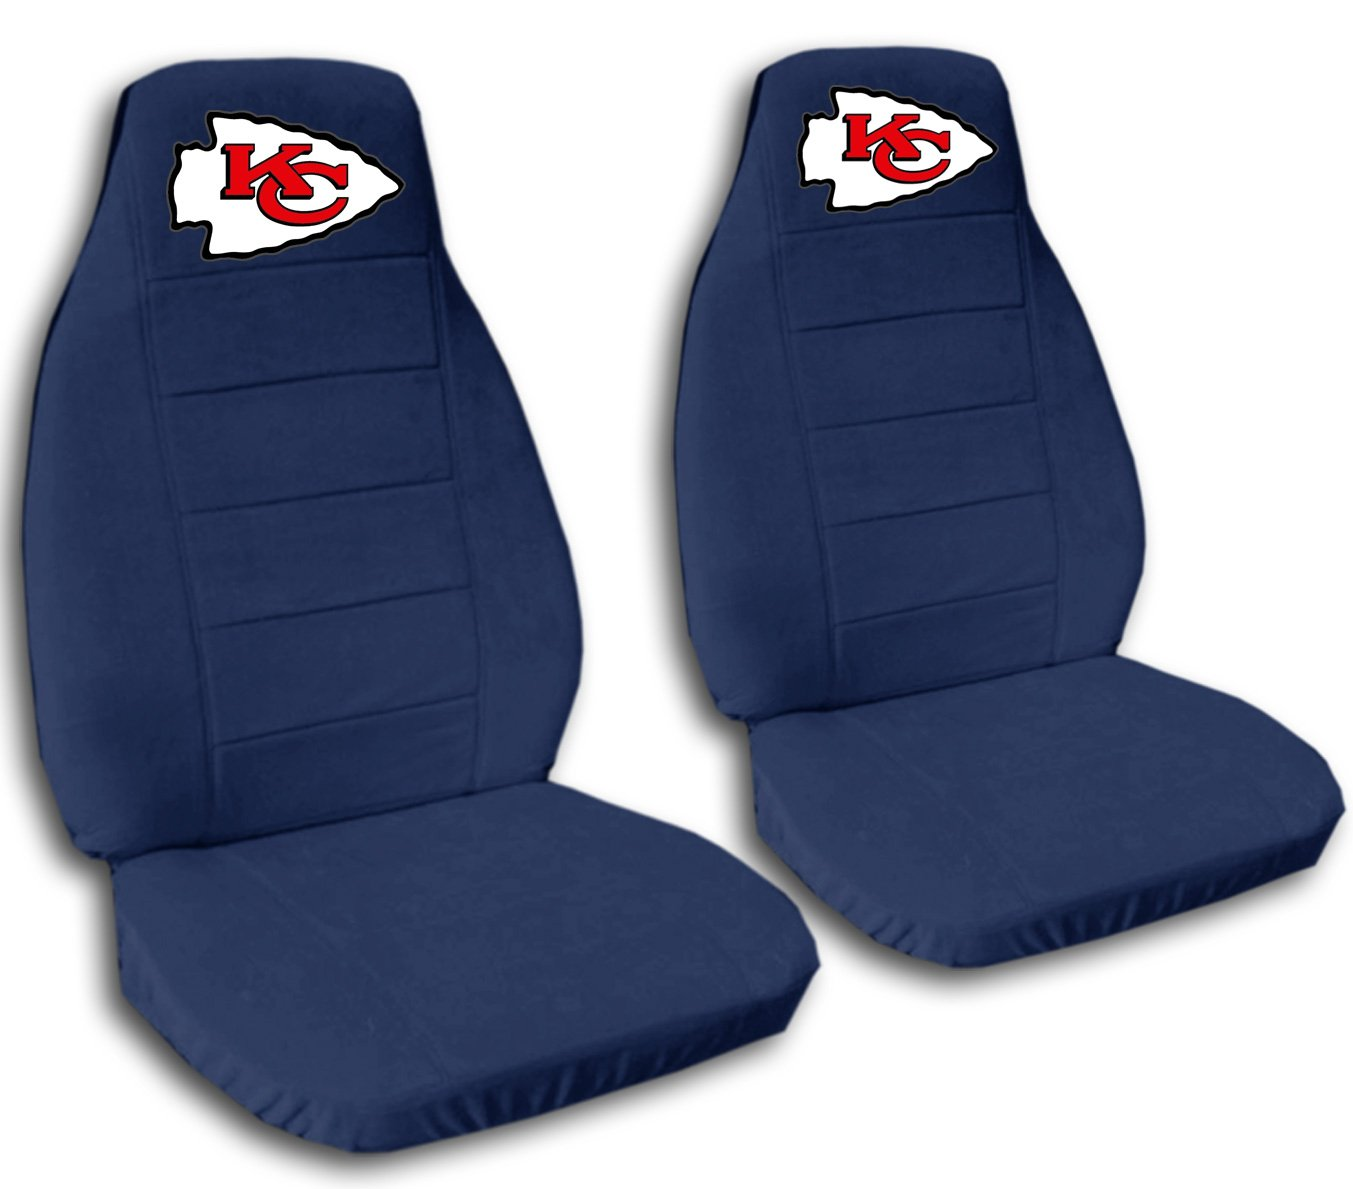 2 Navy Blue Kansas City seat covers for a 2007 to 2012 Chevrolet Silverado. Side airbag friendly.